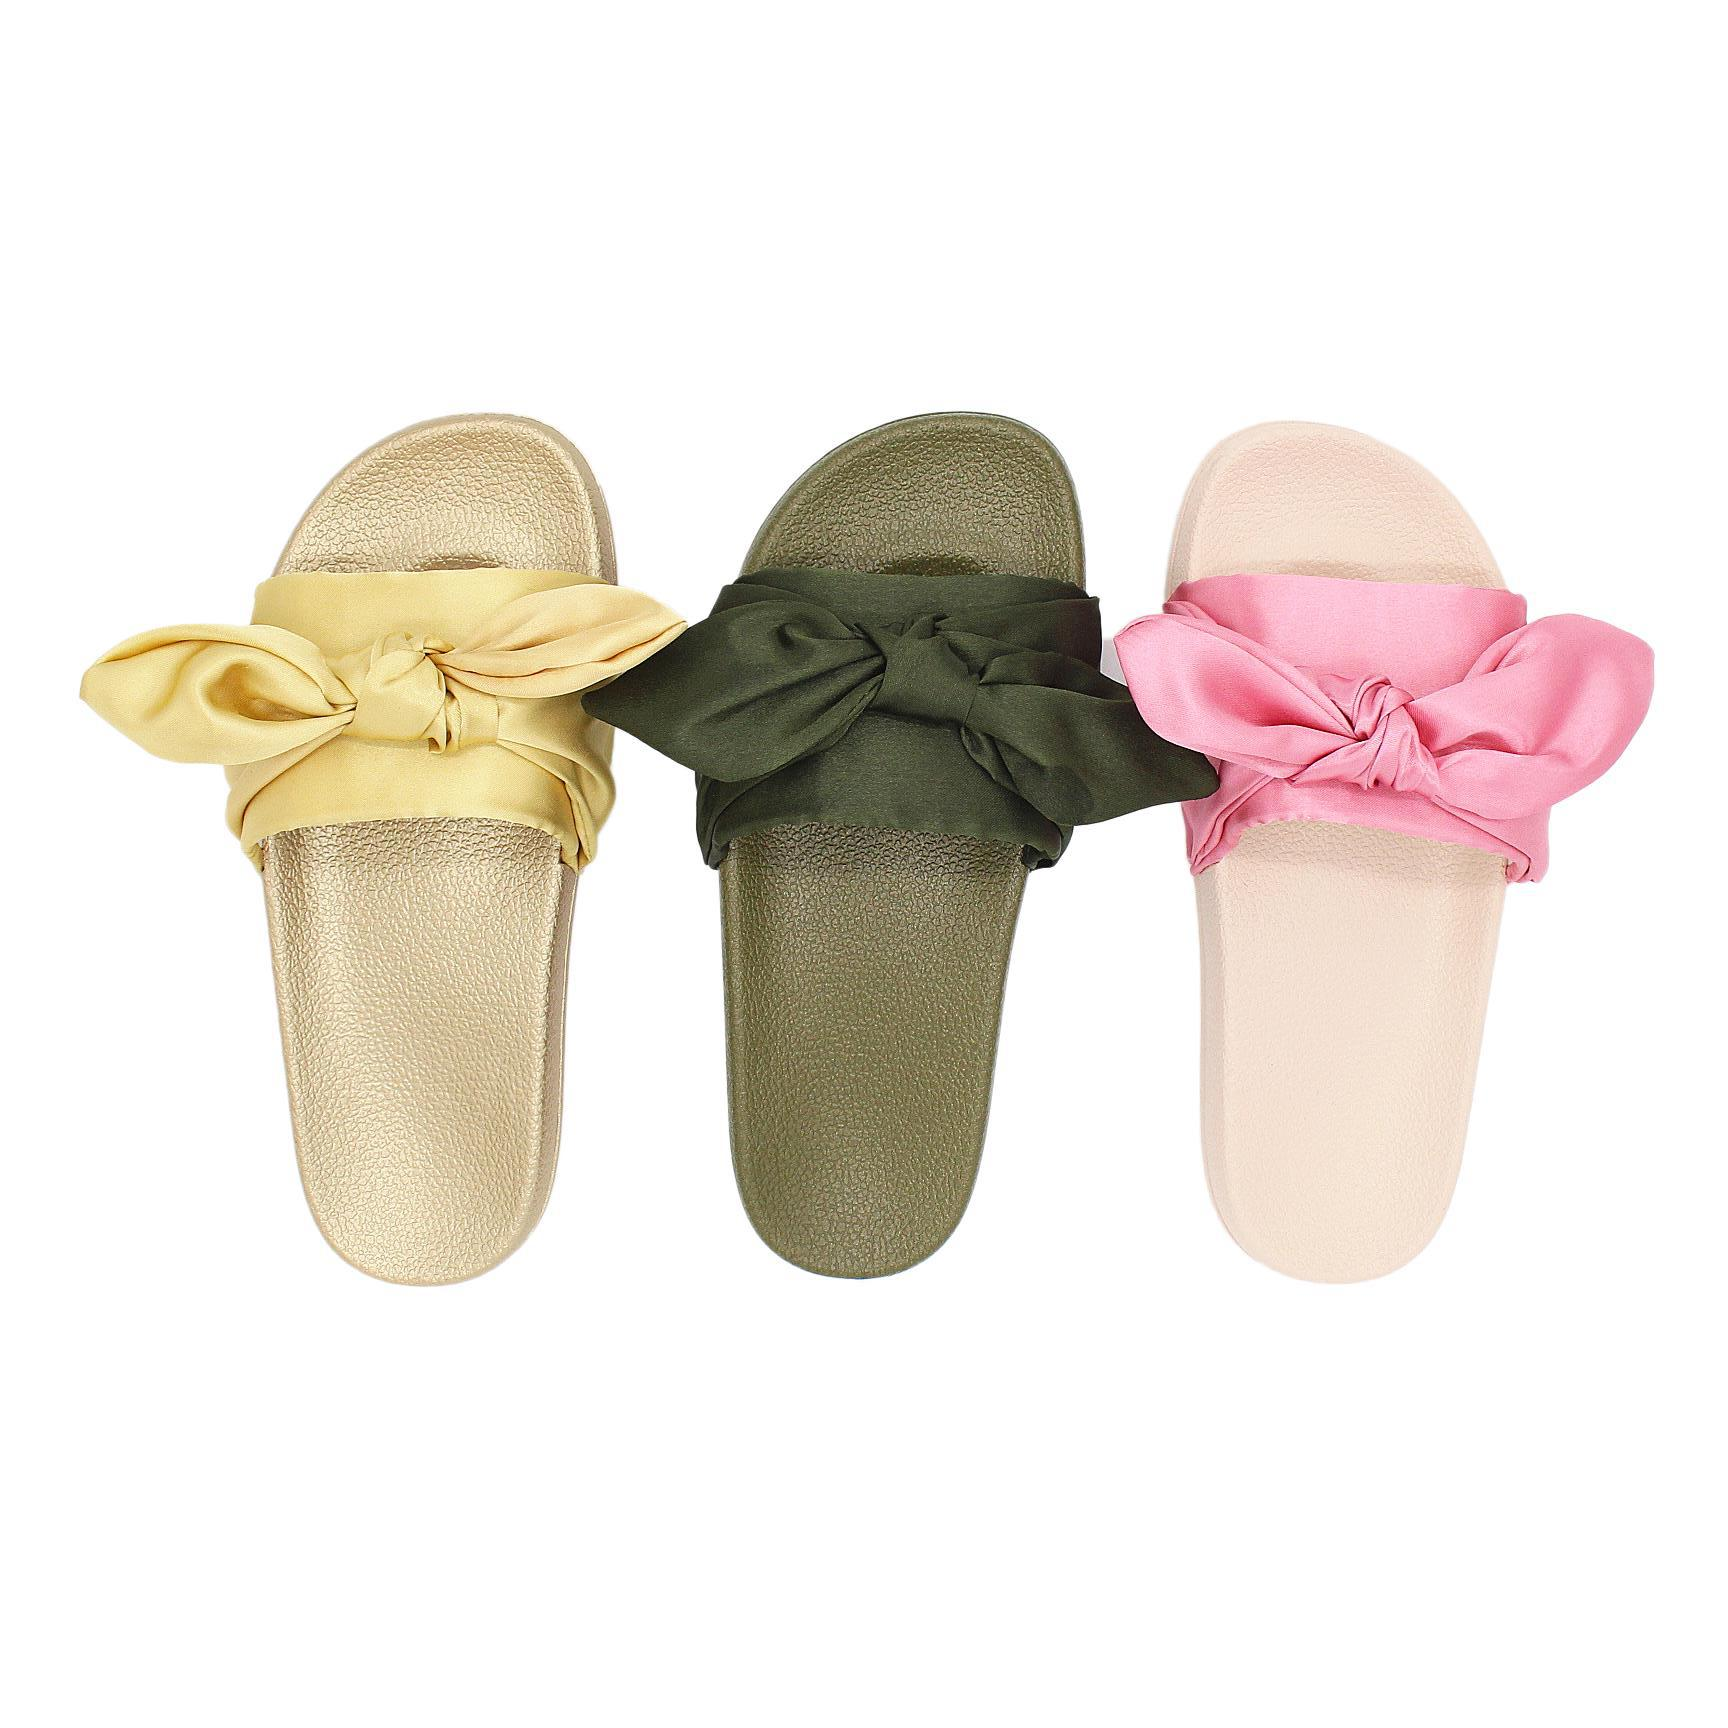 Fashion Silk Bow Slides Women Summer Beach Shoes Woman Slippers Flat Heels Flip Flops Ladies Bohemia Sandals Flat with Slippers in Slippers from Shoes